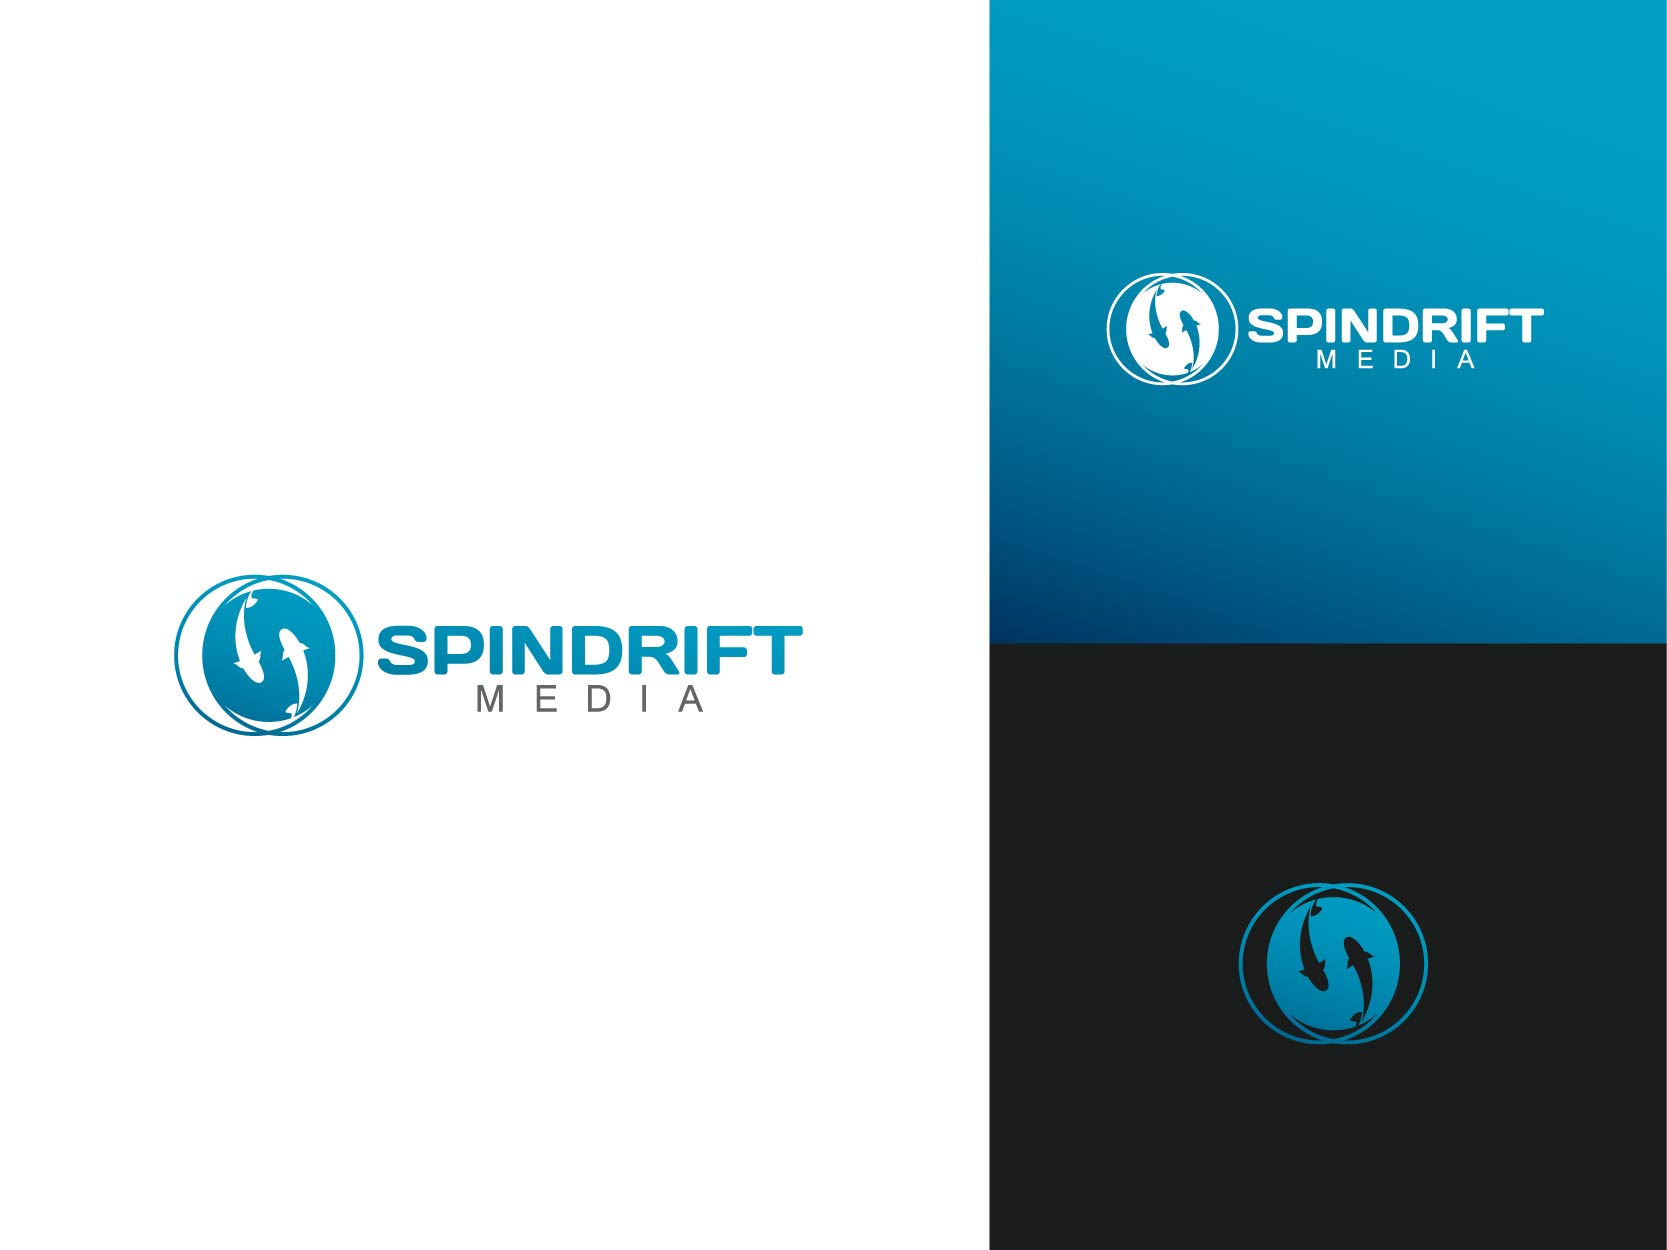 Logo Design by Osi Indra - Entry No. 68 in the Logo Design Contest Inspiring Logo Design for Spindrift Media.